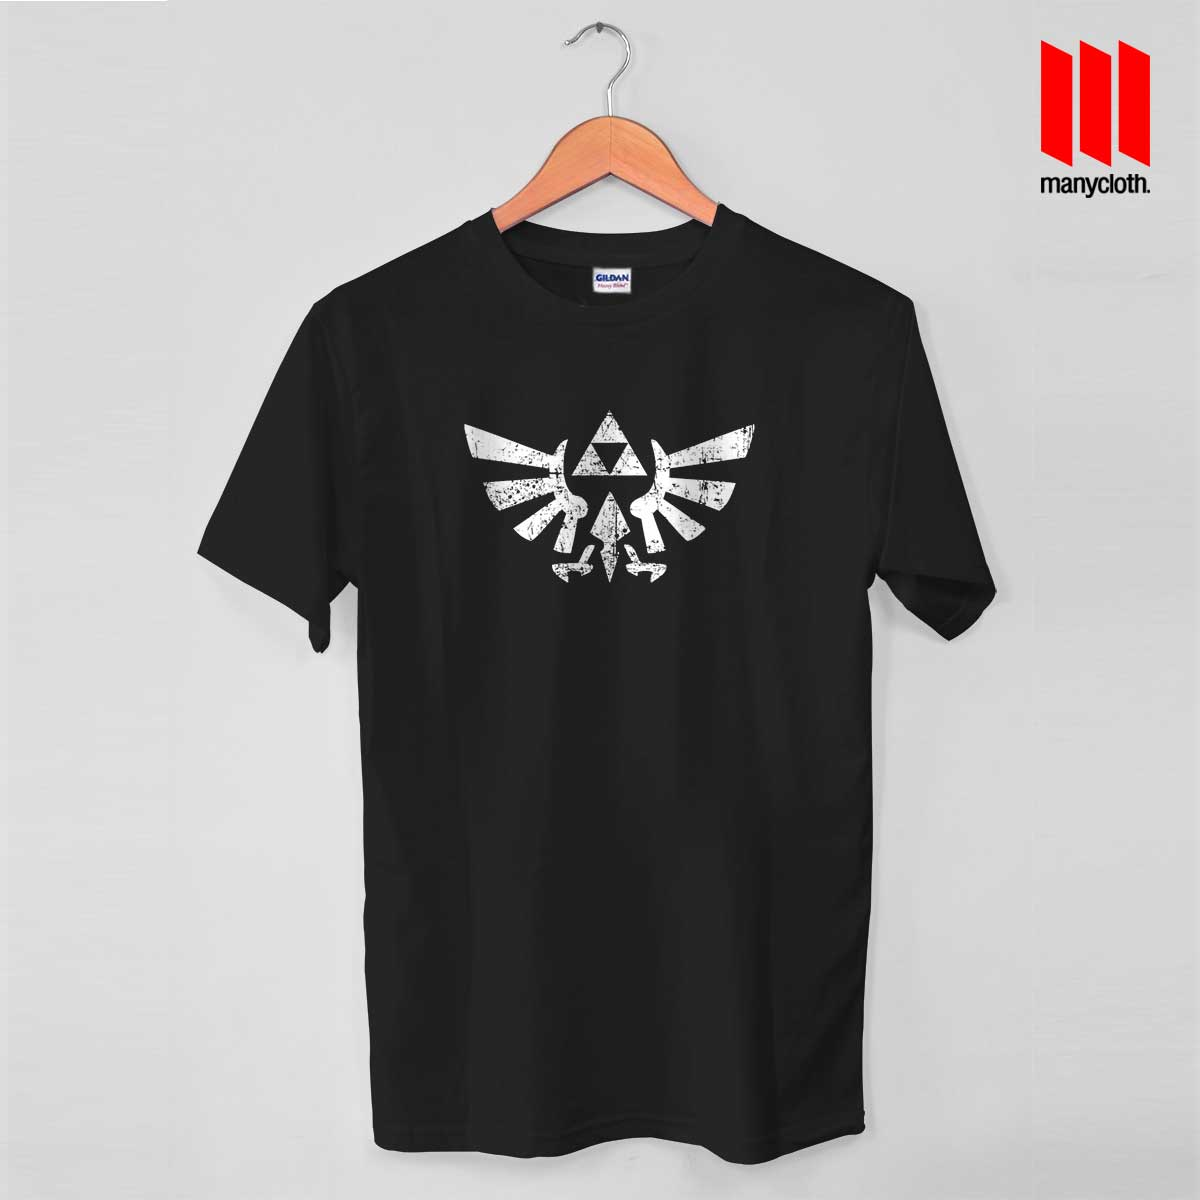 eeb891676 Zelda Triforce Symbol T Shirt - by ManyCloth chep designs.com